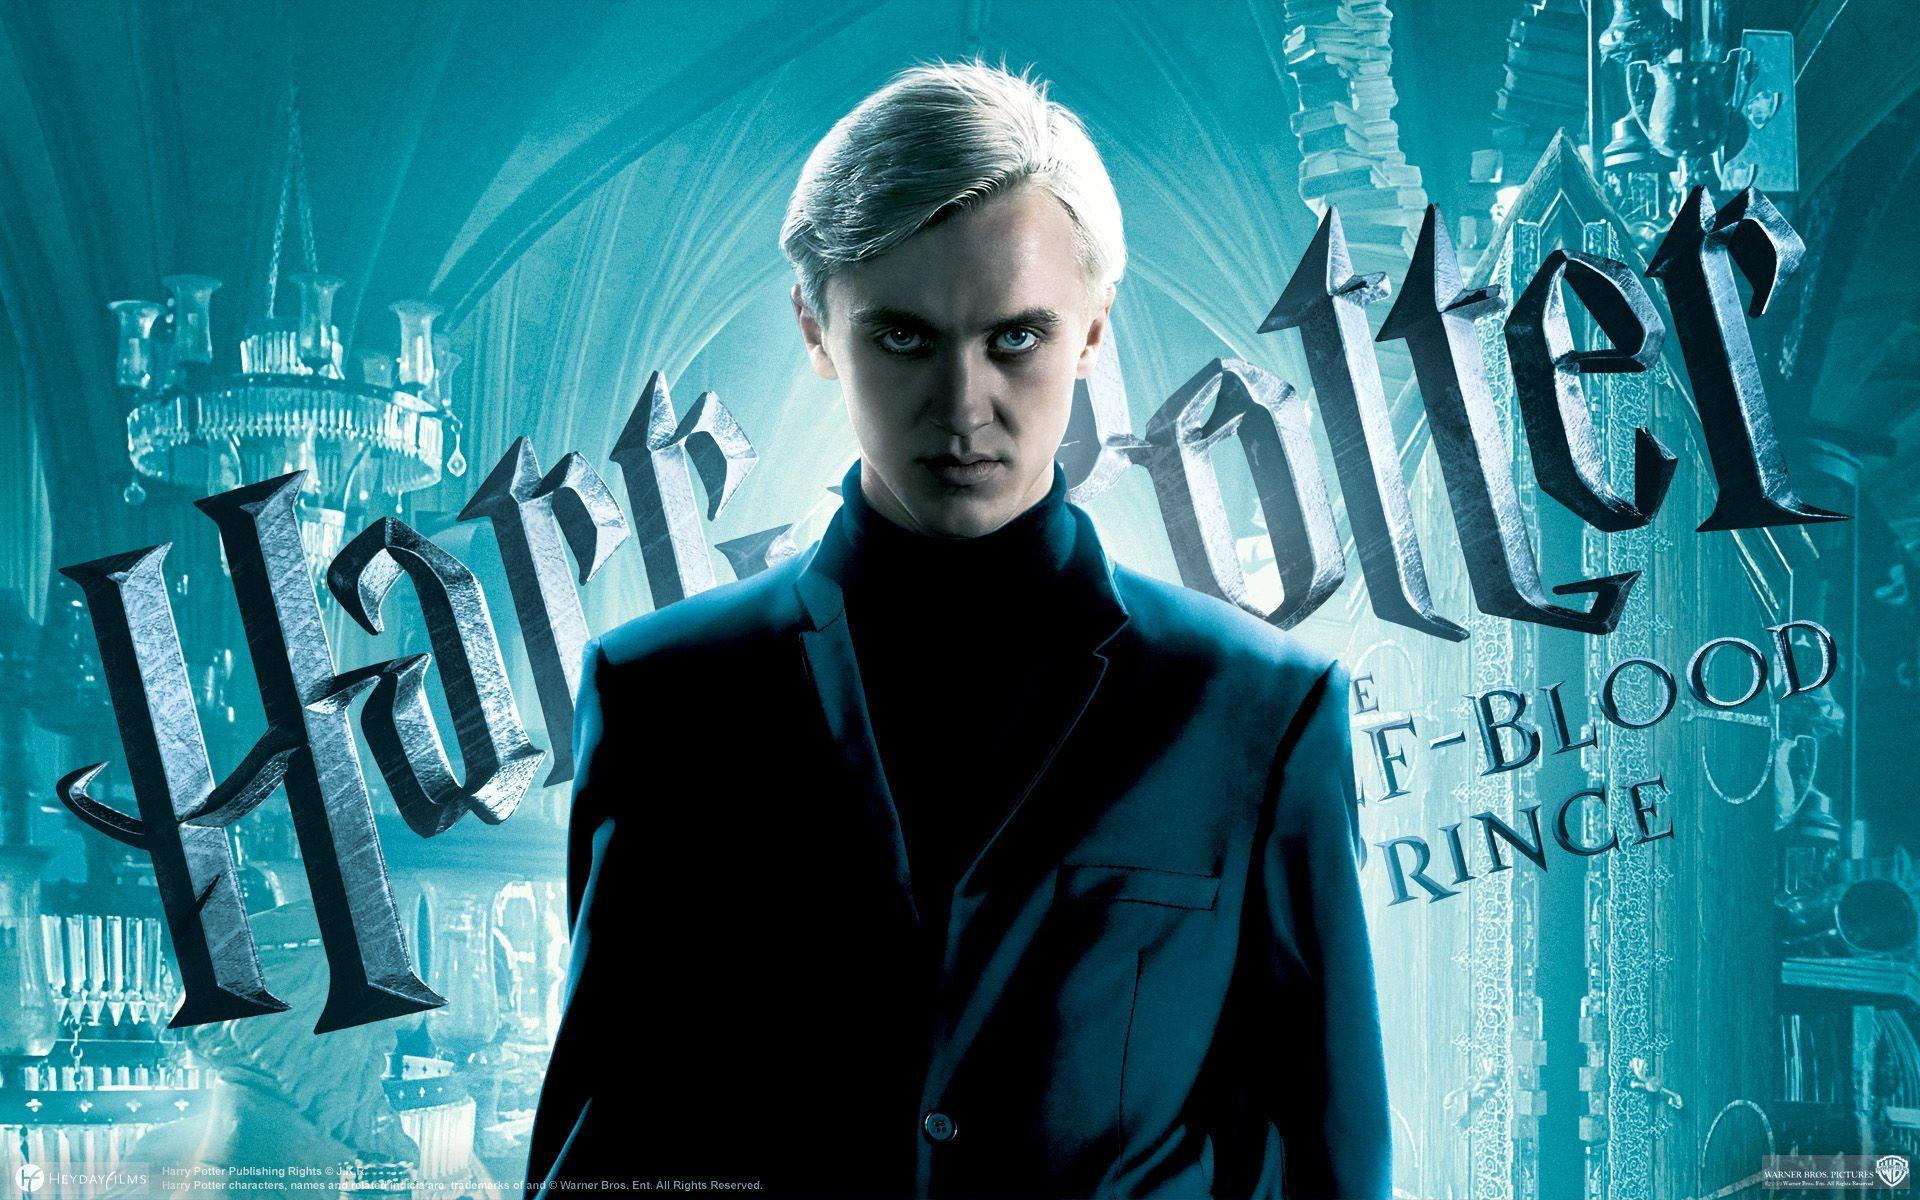 Collection of Draco Malfoy Wallpapers on HDWallpapers